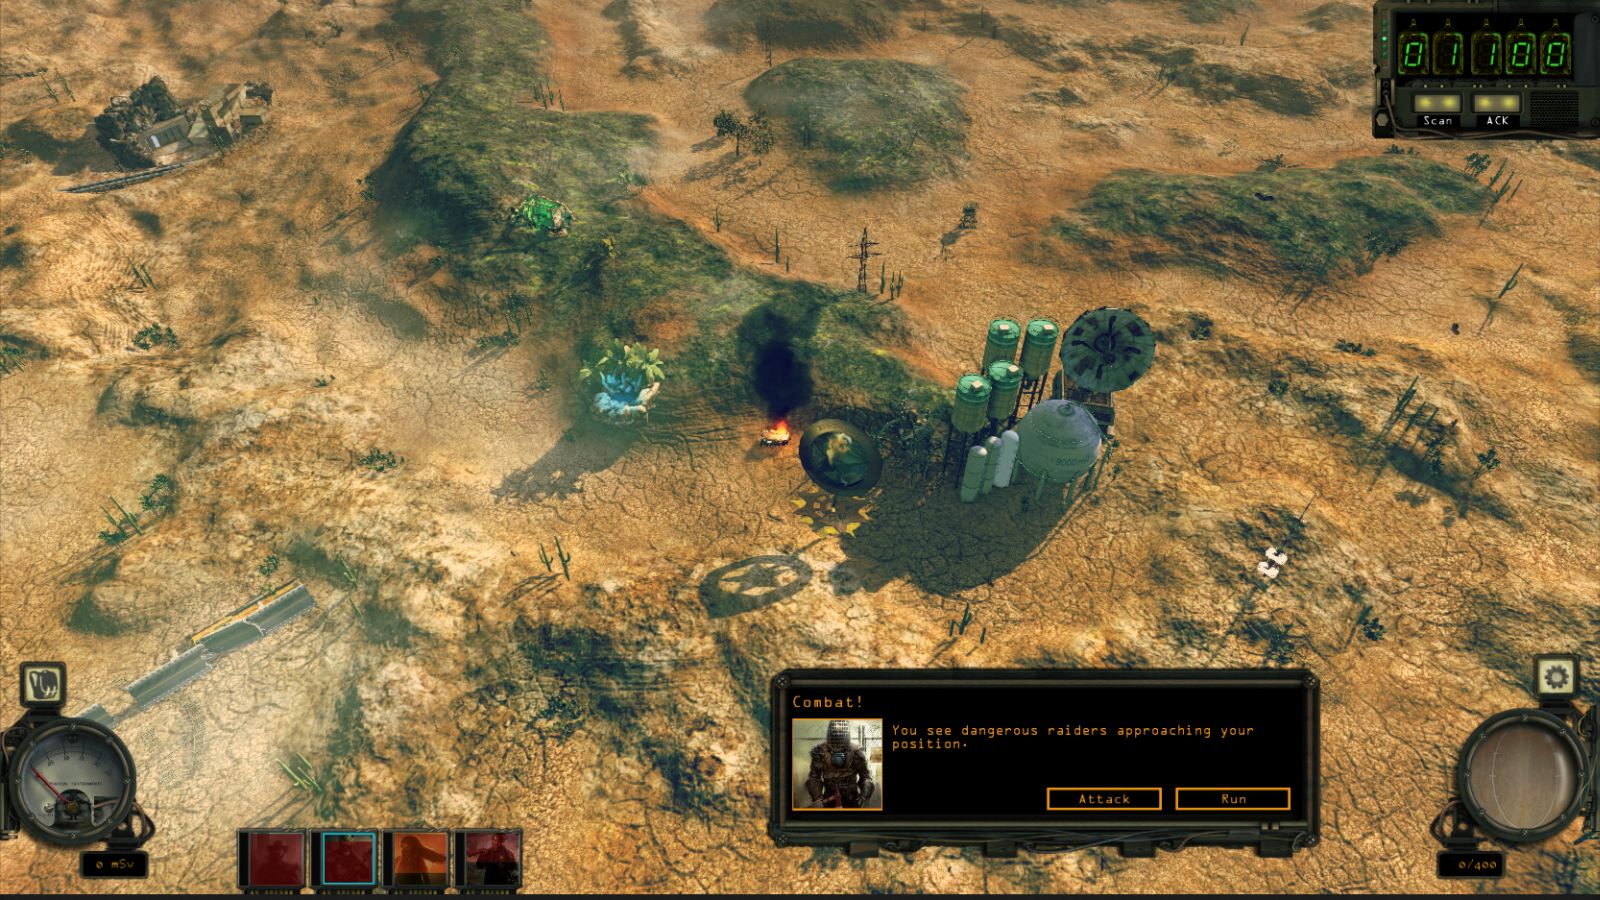 Wasteland 2 Reveals World Map, Adventure Details